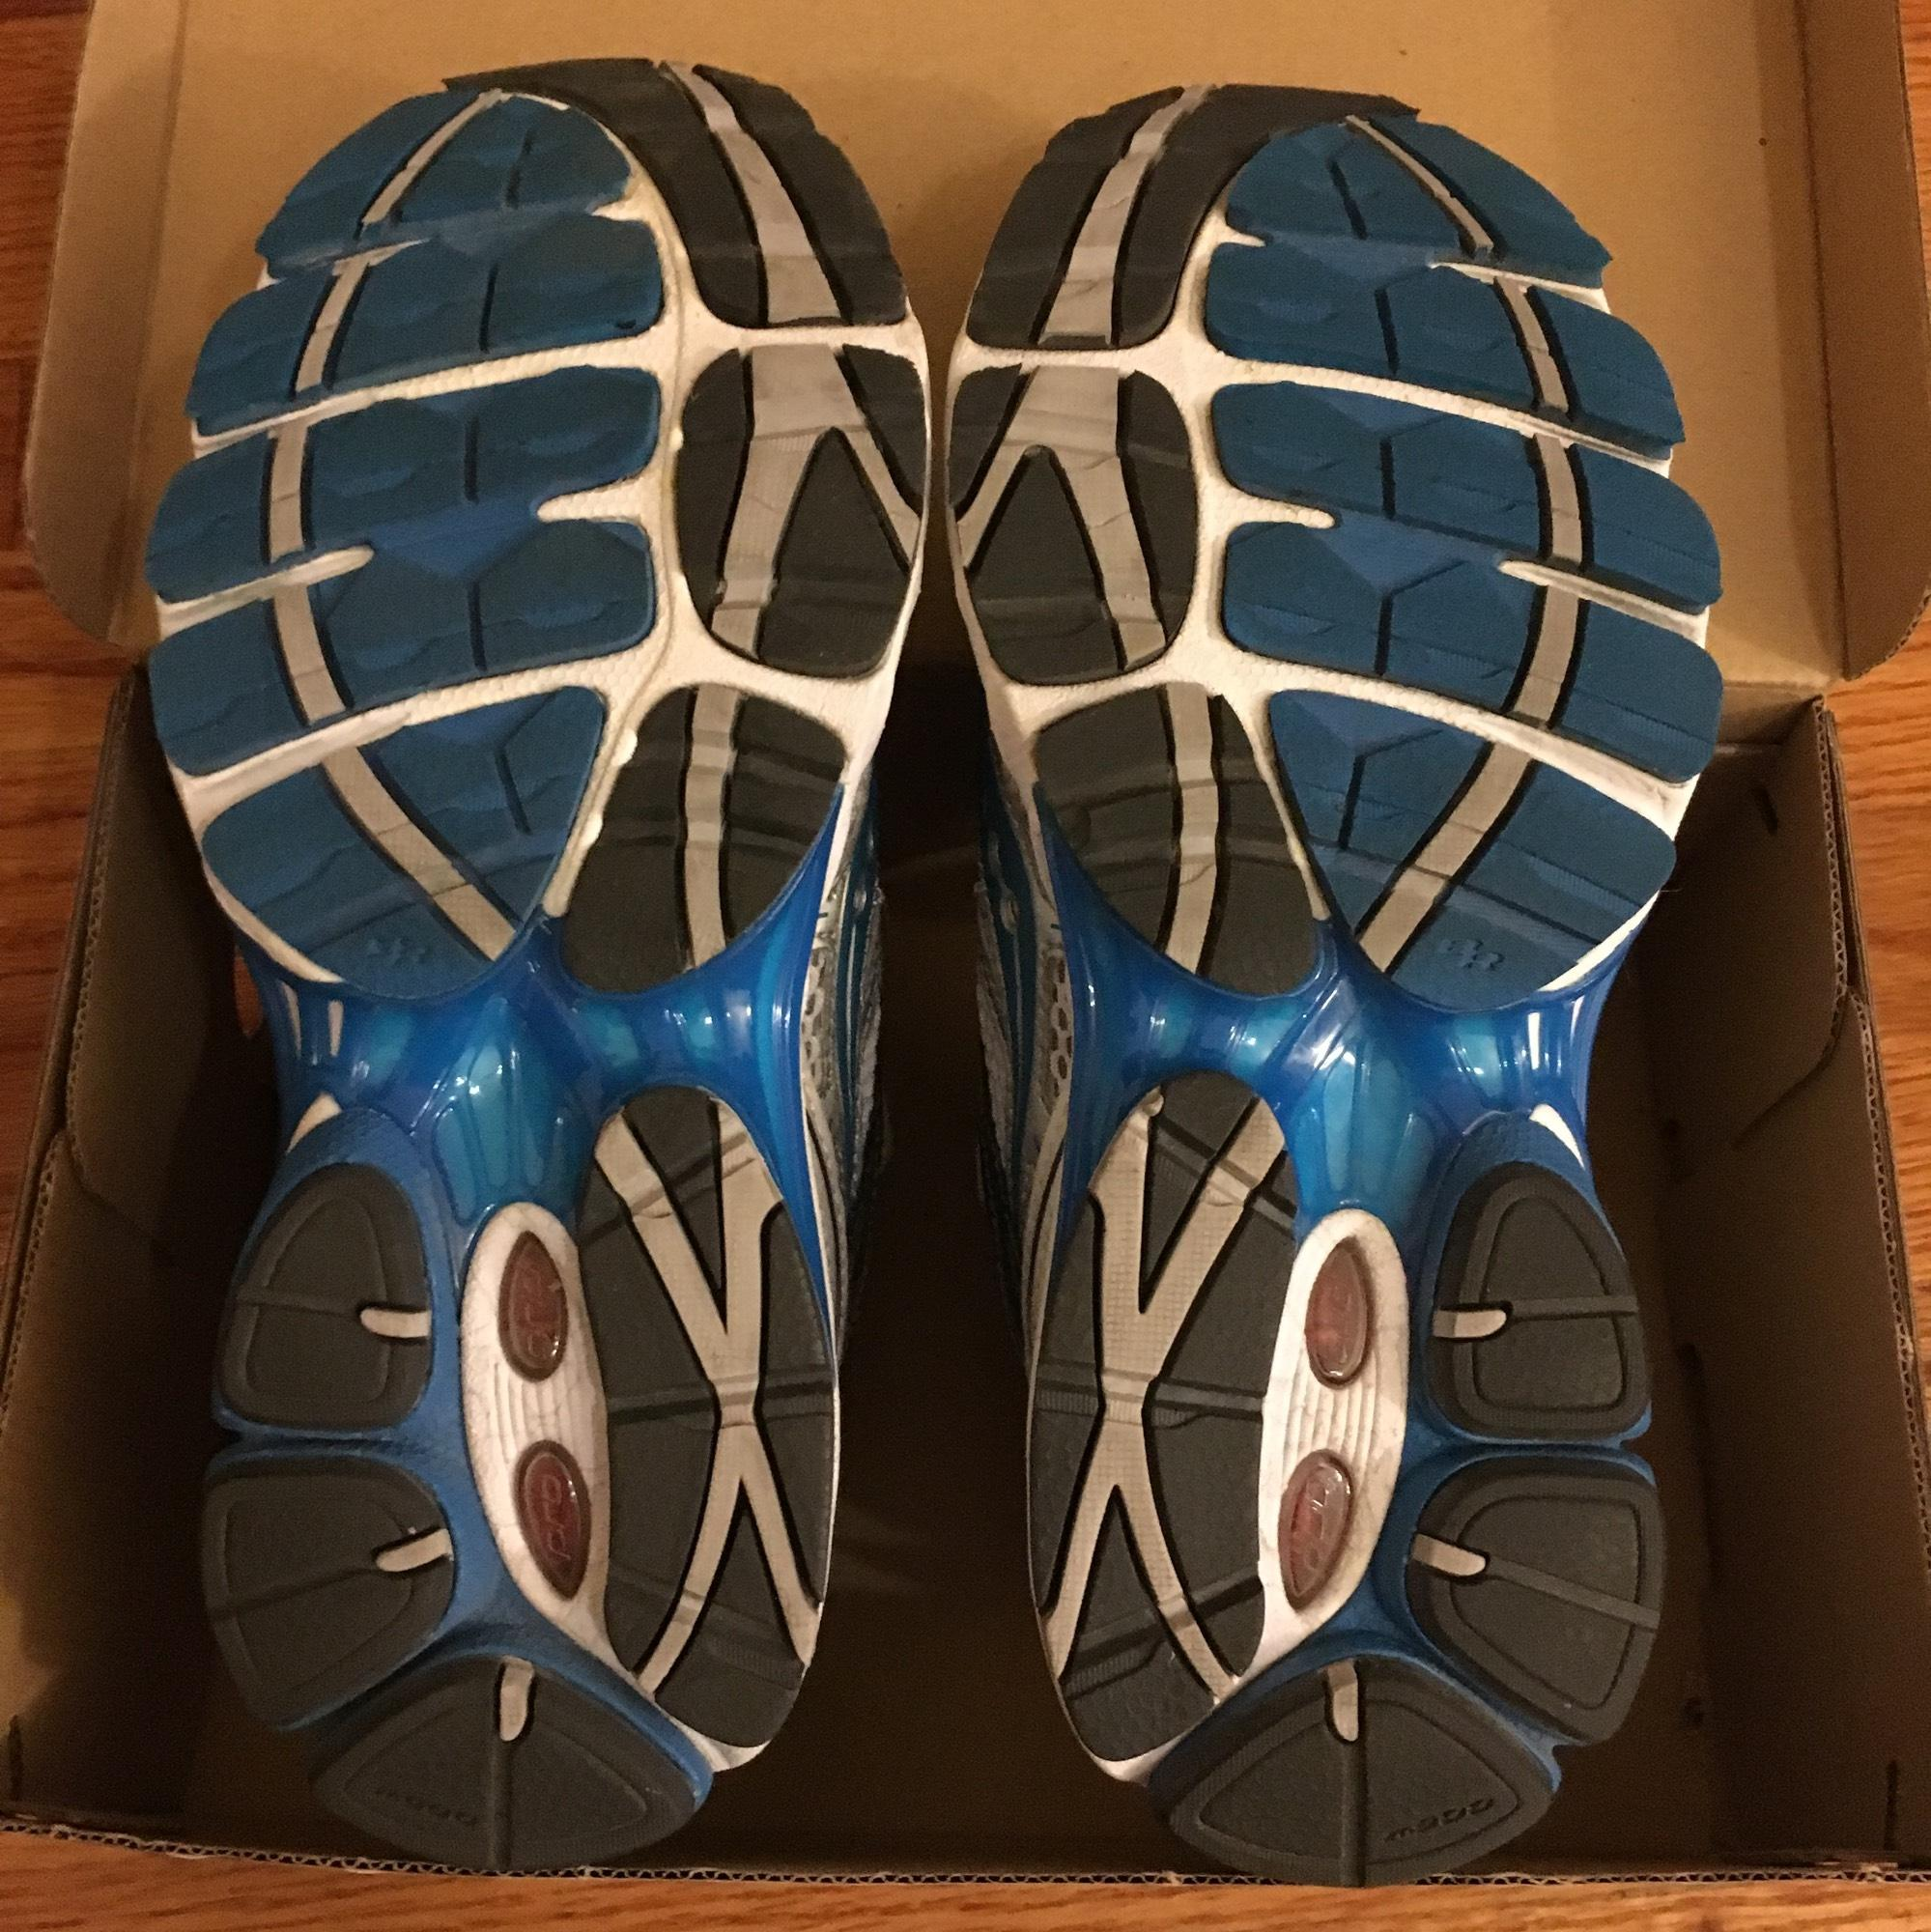 Saucony Blue and White Progrid Omni 10 Sneakers Size US 7 Regular (M, B)